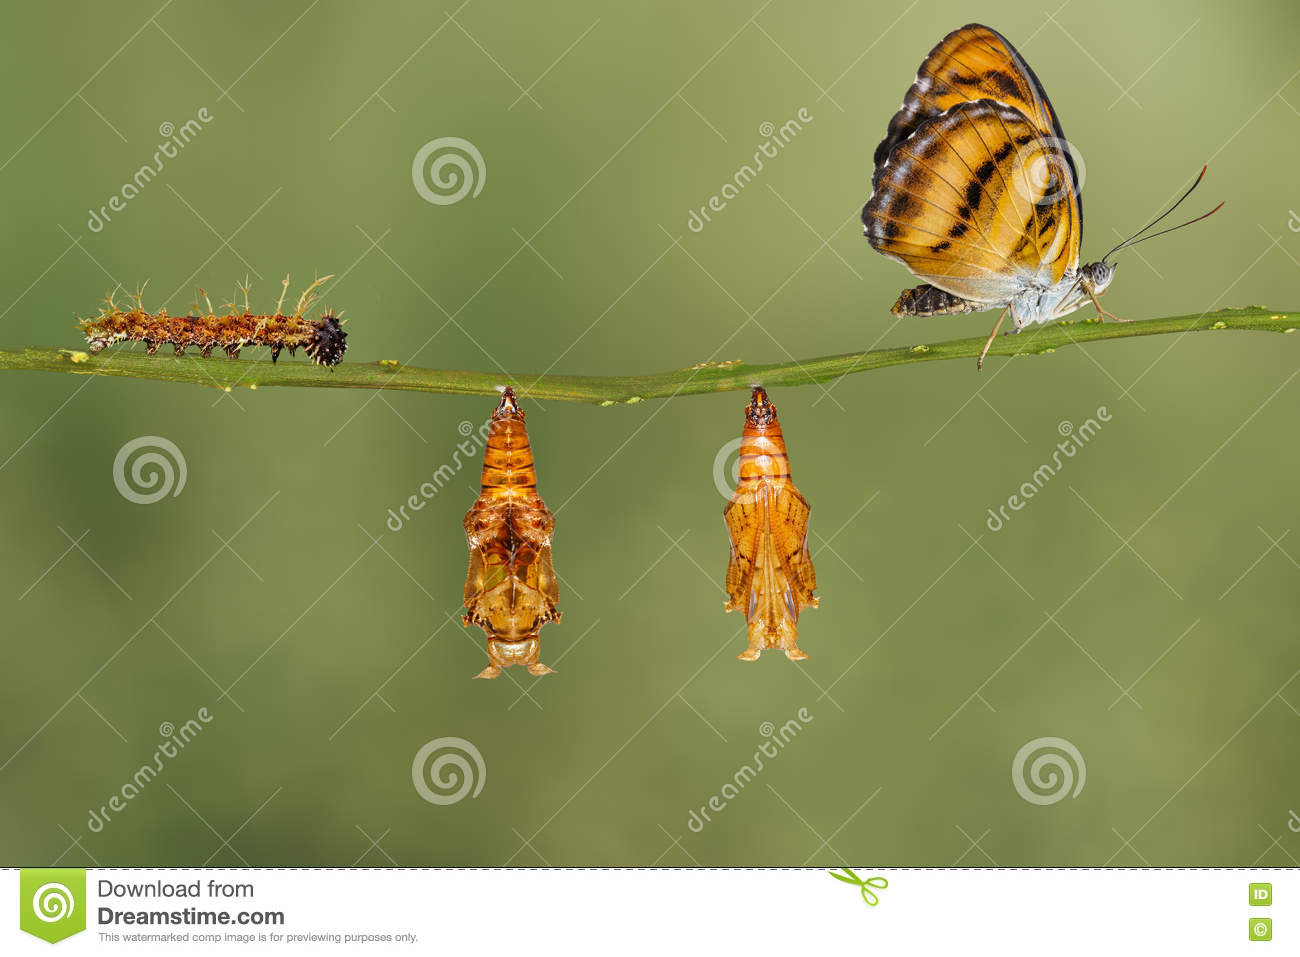 Life cycle of colour segeant butterfly hanging on twig